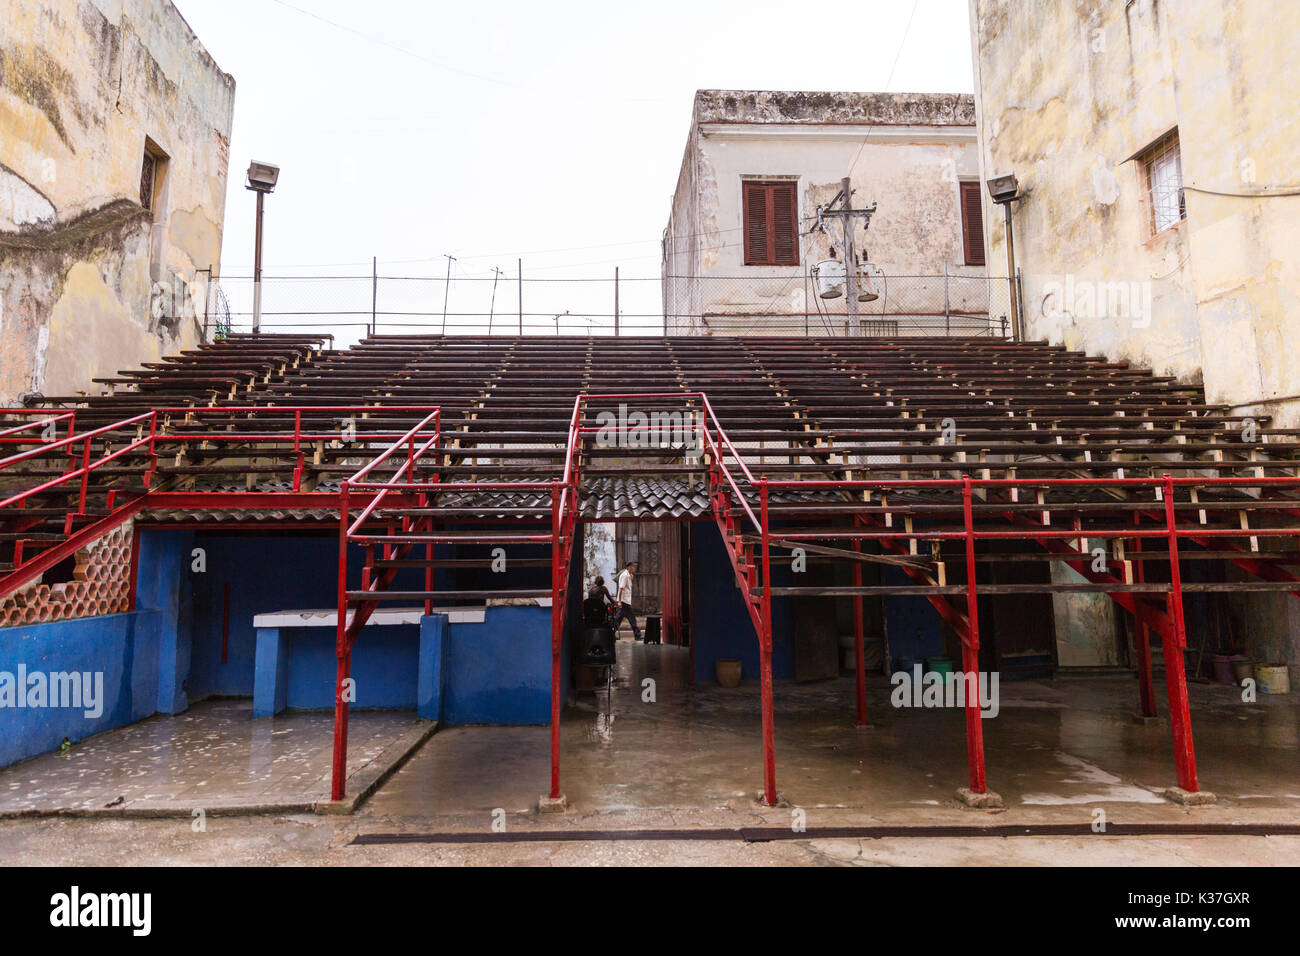 Open air seating interior at the popular Gimnasio  Rafael Trejo boxing ring and venue in Habana Vieja, Havana, Cuba - Stock Image